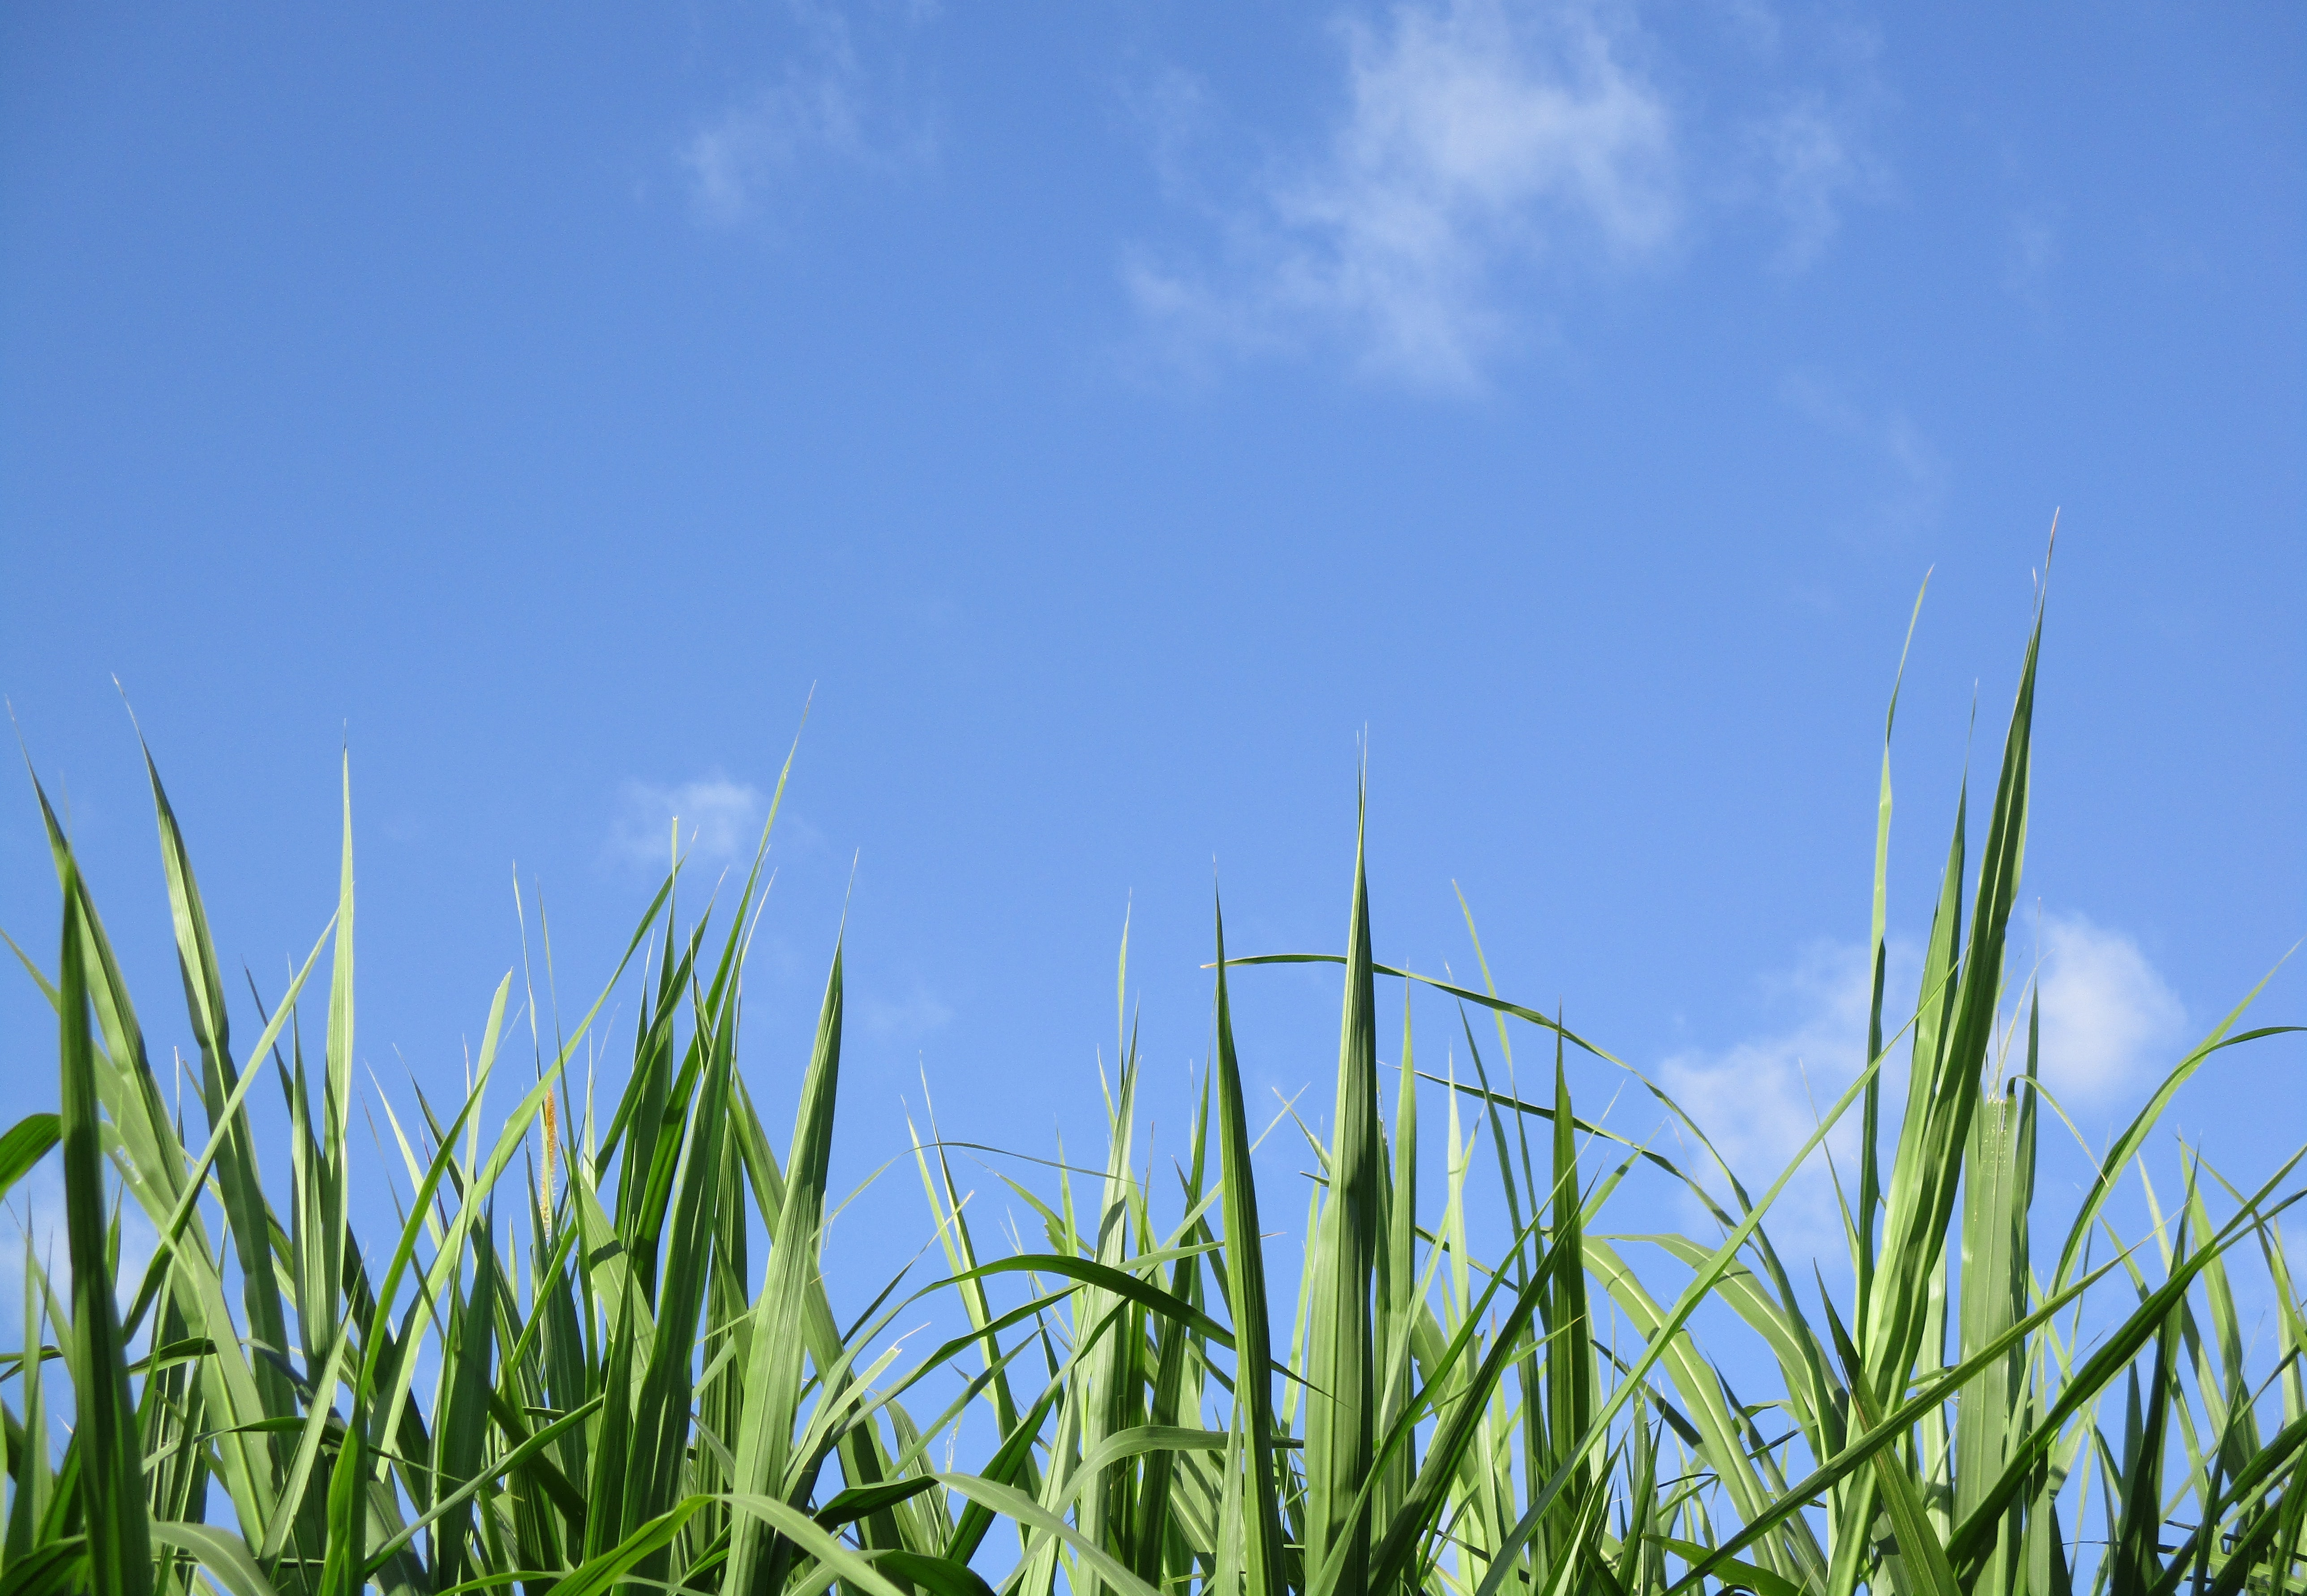 green linear leafed plants under blue sky during daytime